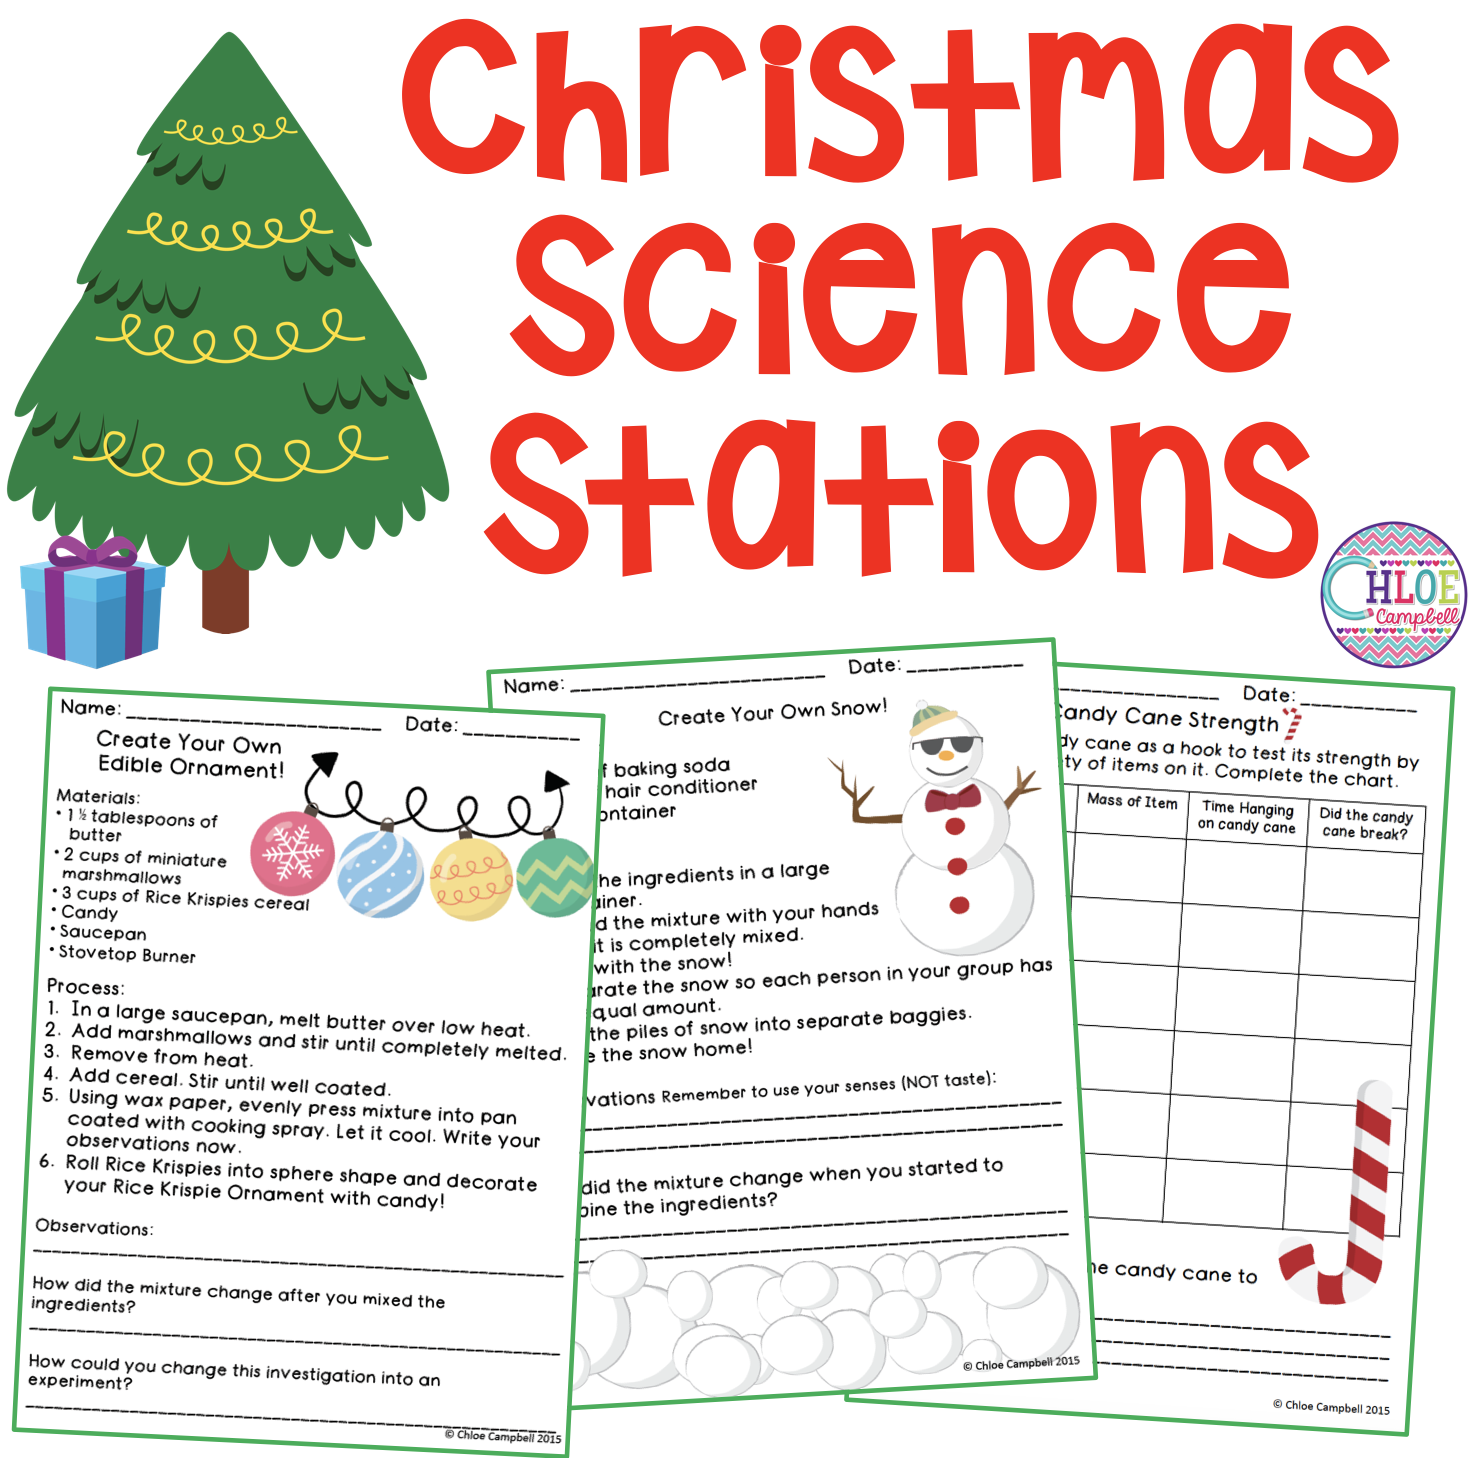 Christmas Science Station Activities | Science stations, Science ...